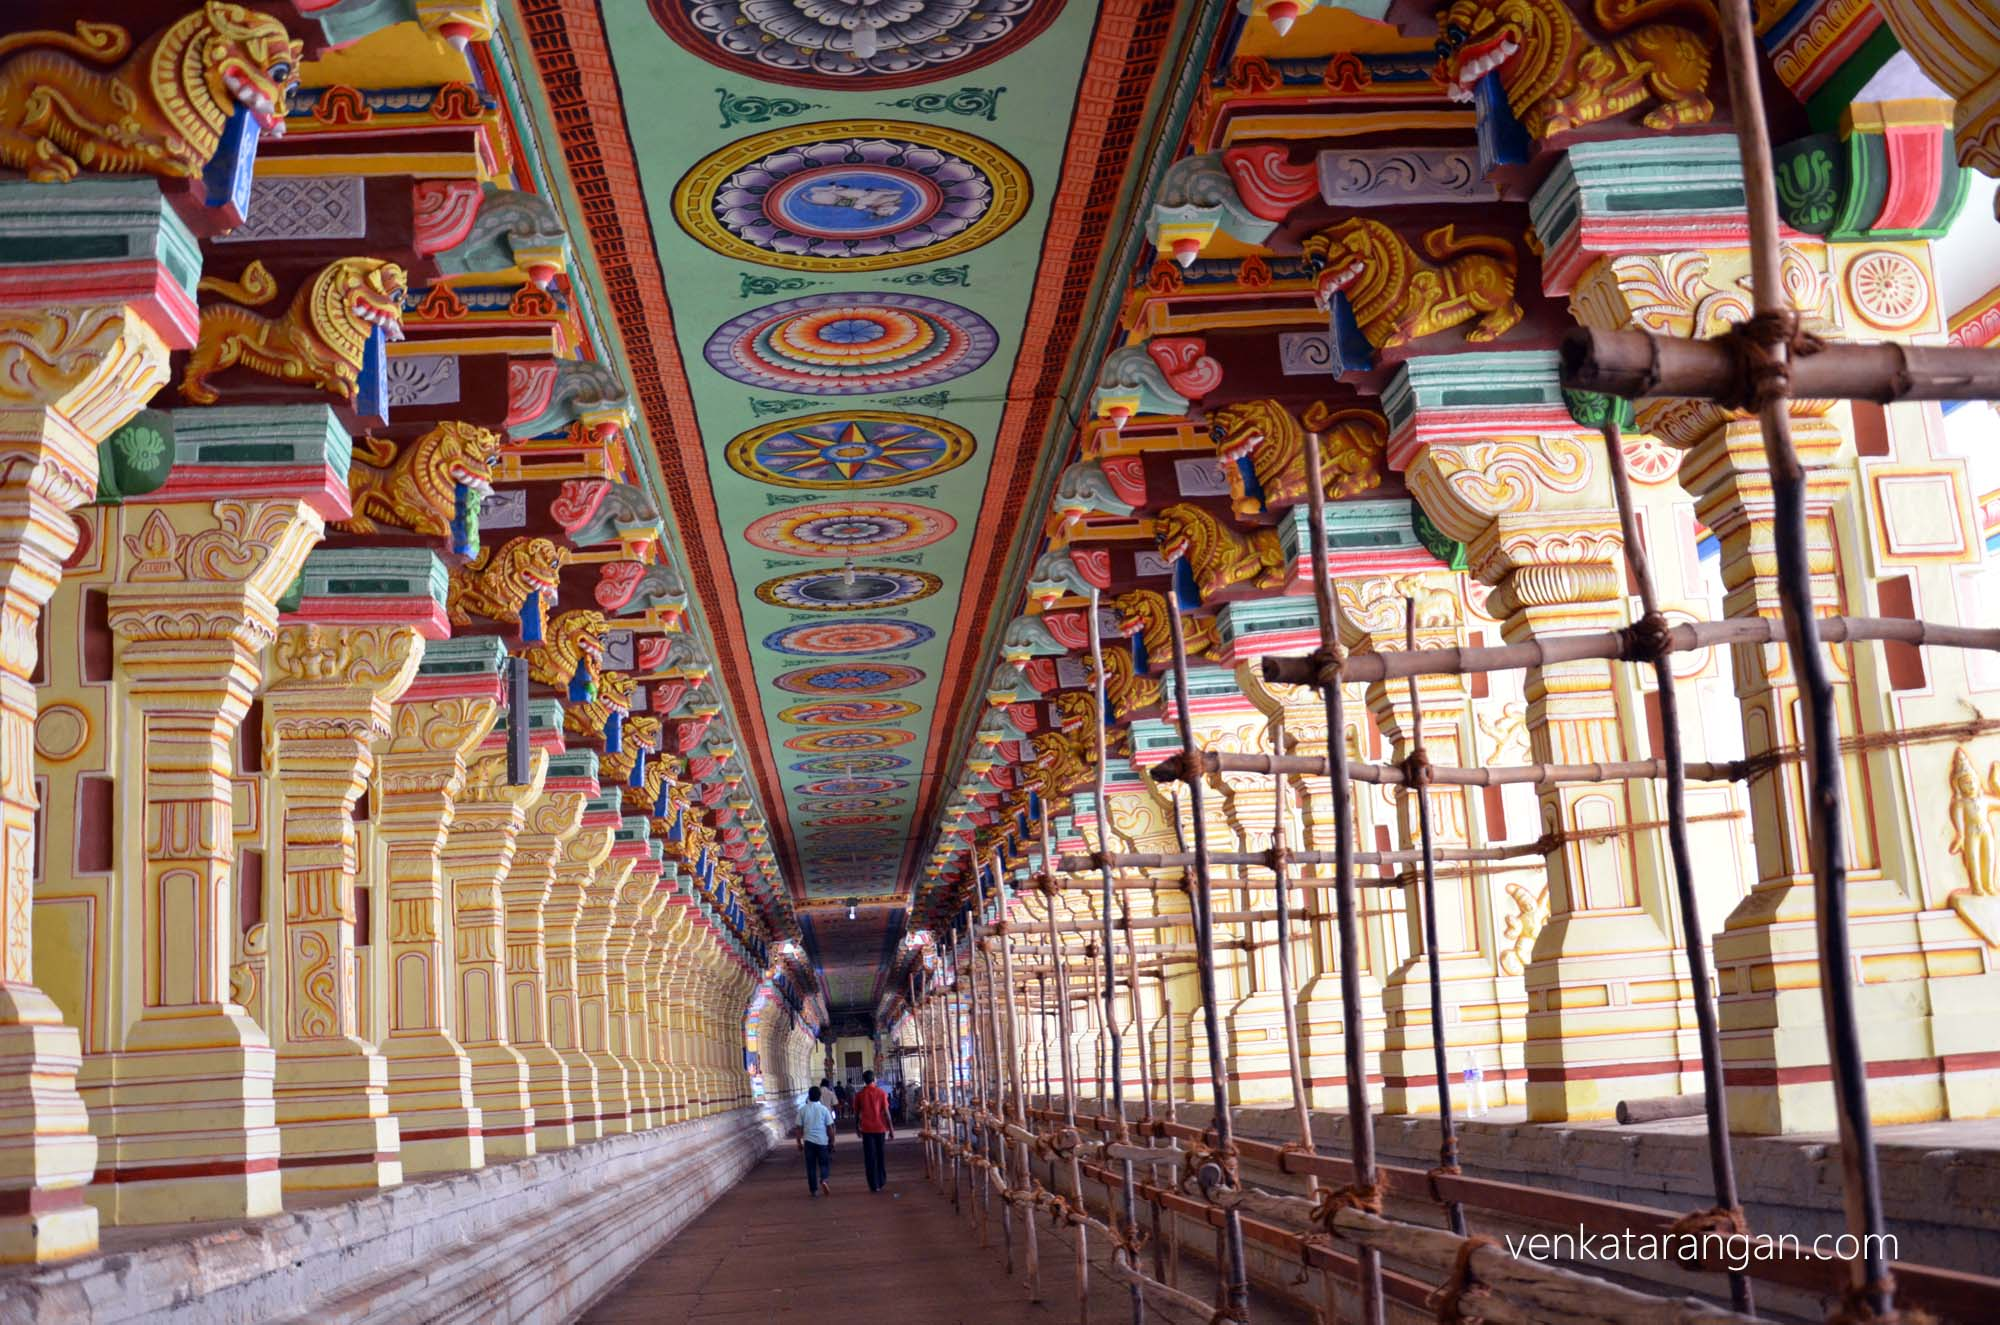 Beautifully decorated temple corridor, one of the longest in India